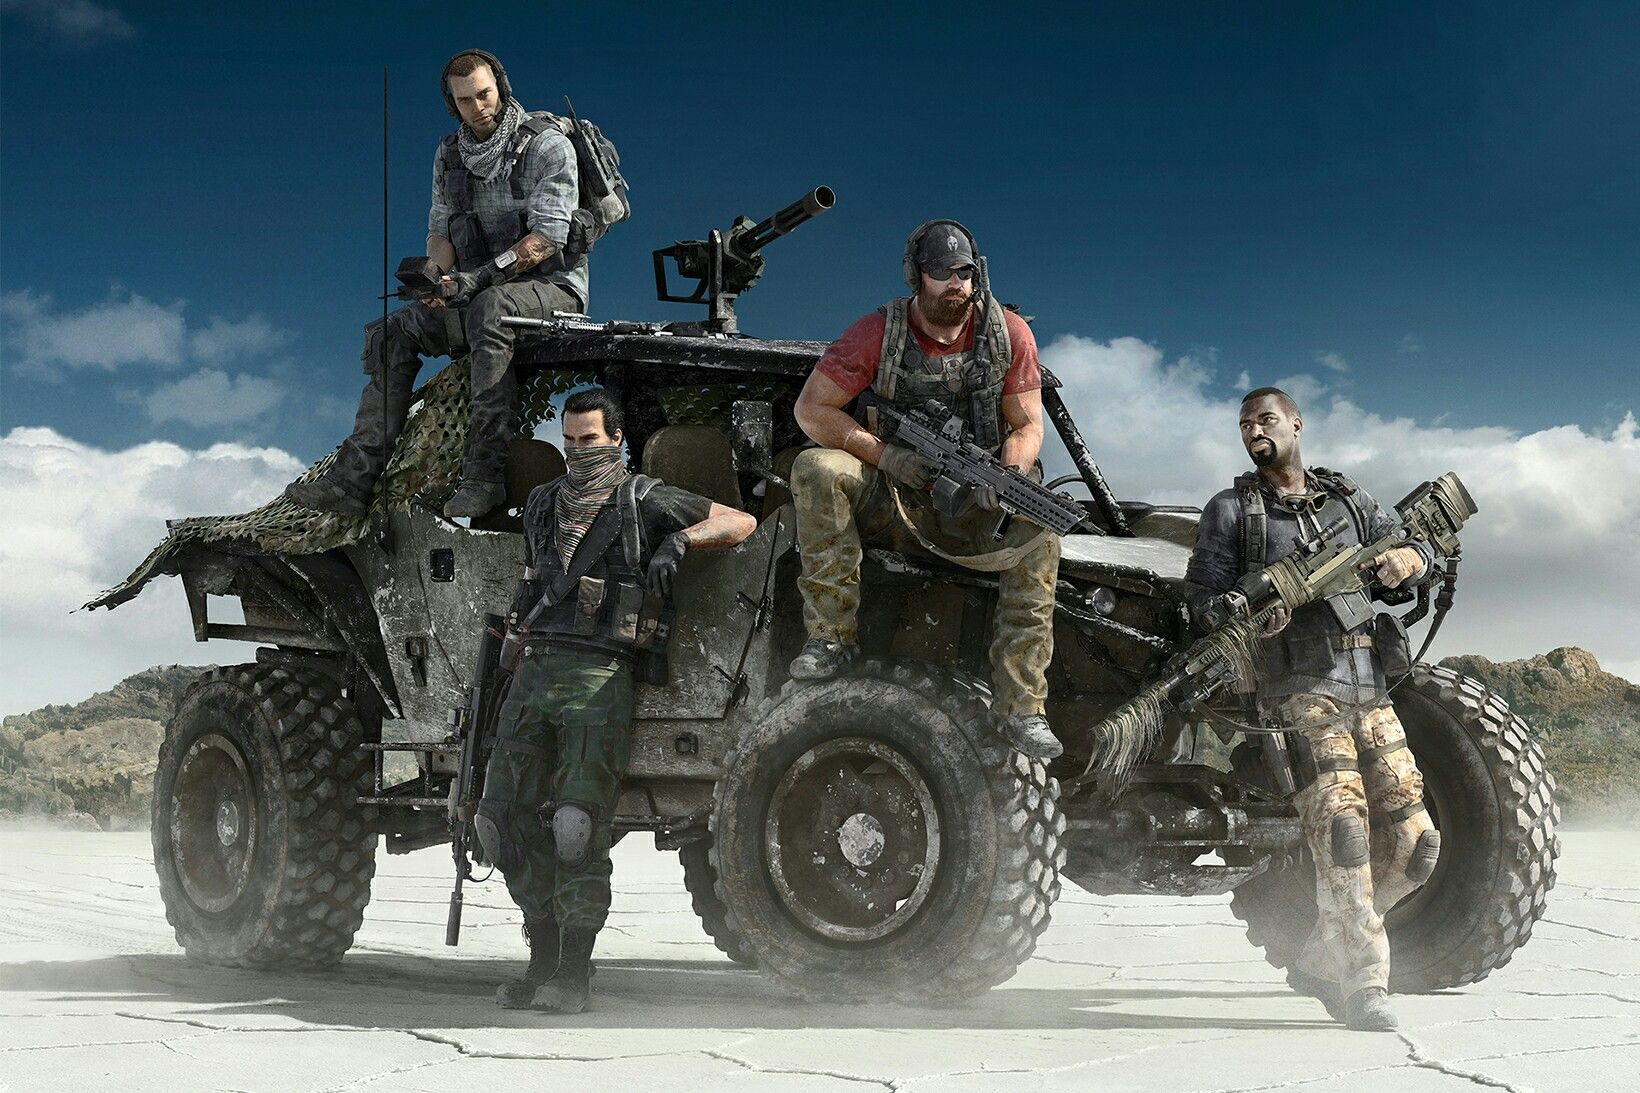 Pin by Akshay Kadikkad on Download Ghost recon wildlands